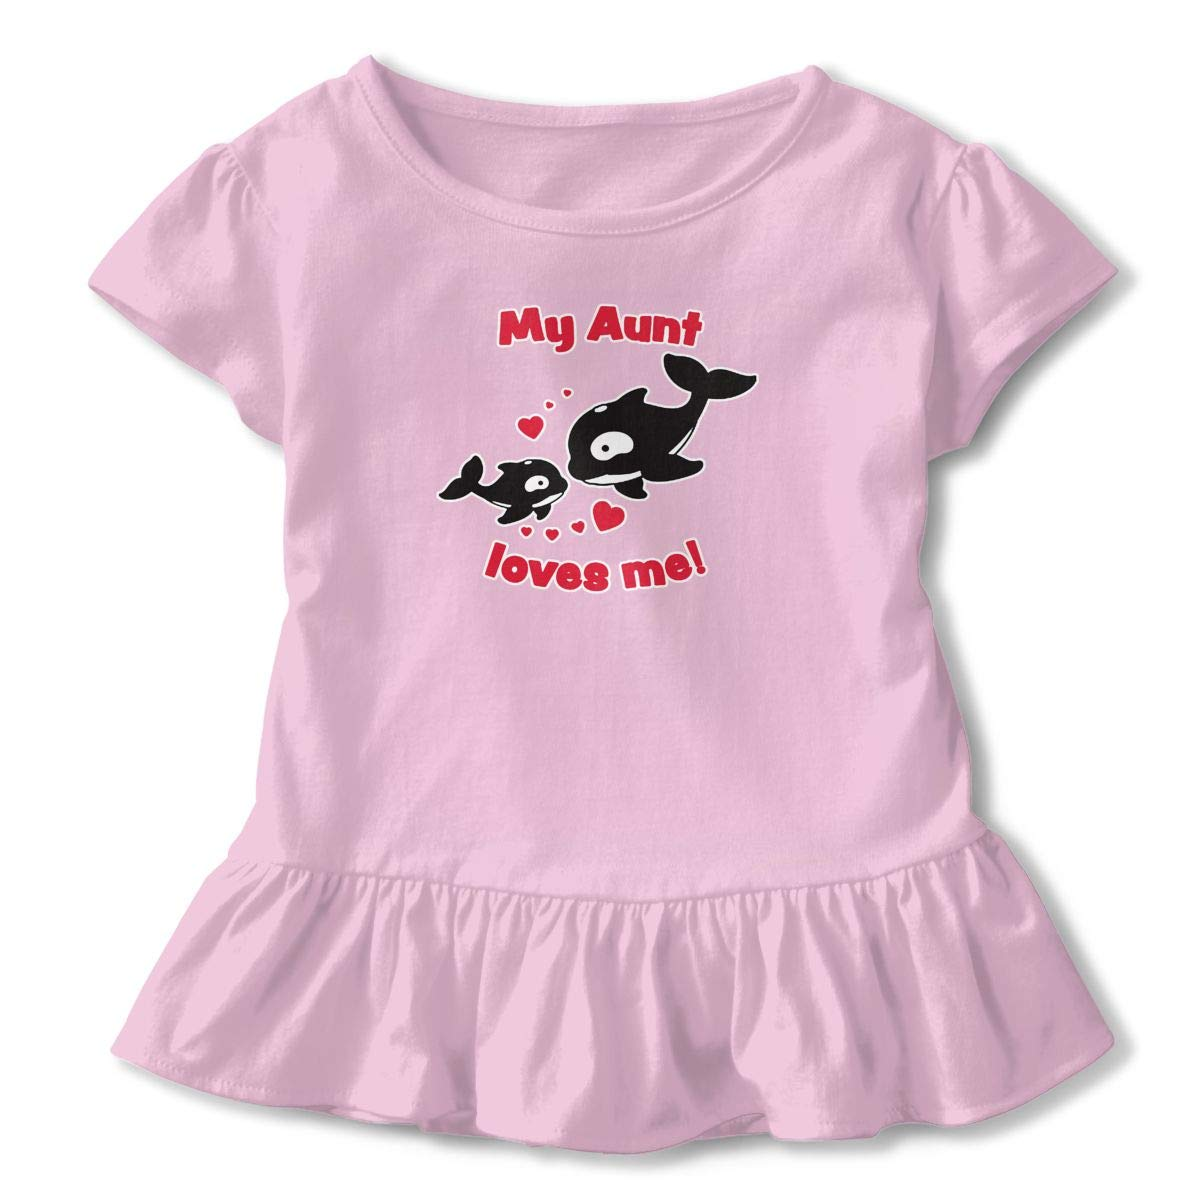 My Aunt Loves Me Toddler Baby Girl Ruffle Short Sleeve T-Shirt Cute Cotton T Shirts